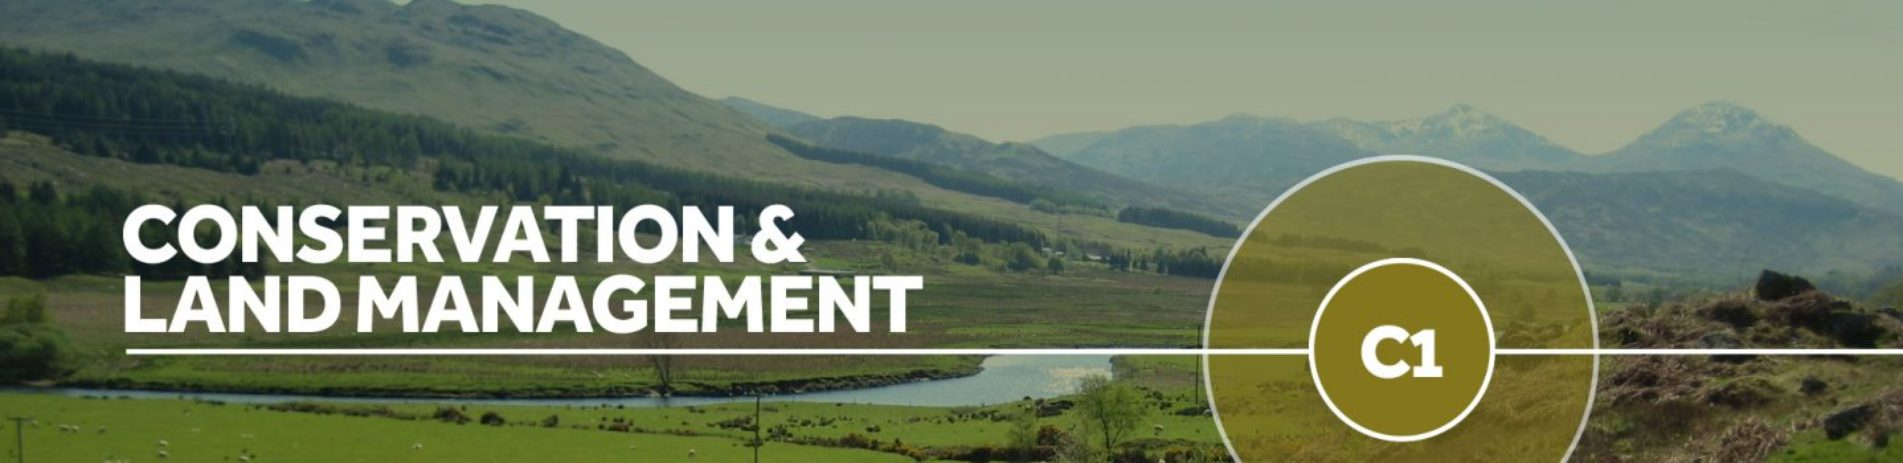 conservation-and-land-management-banner-with-mountain-panoramic-background